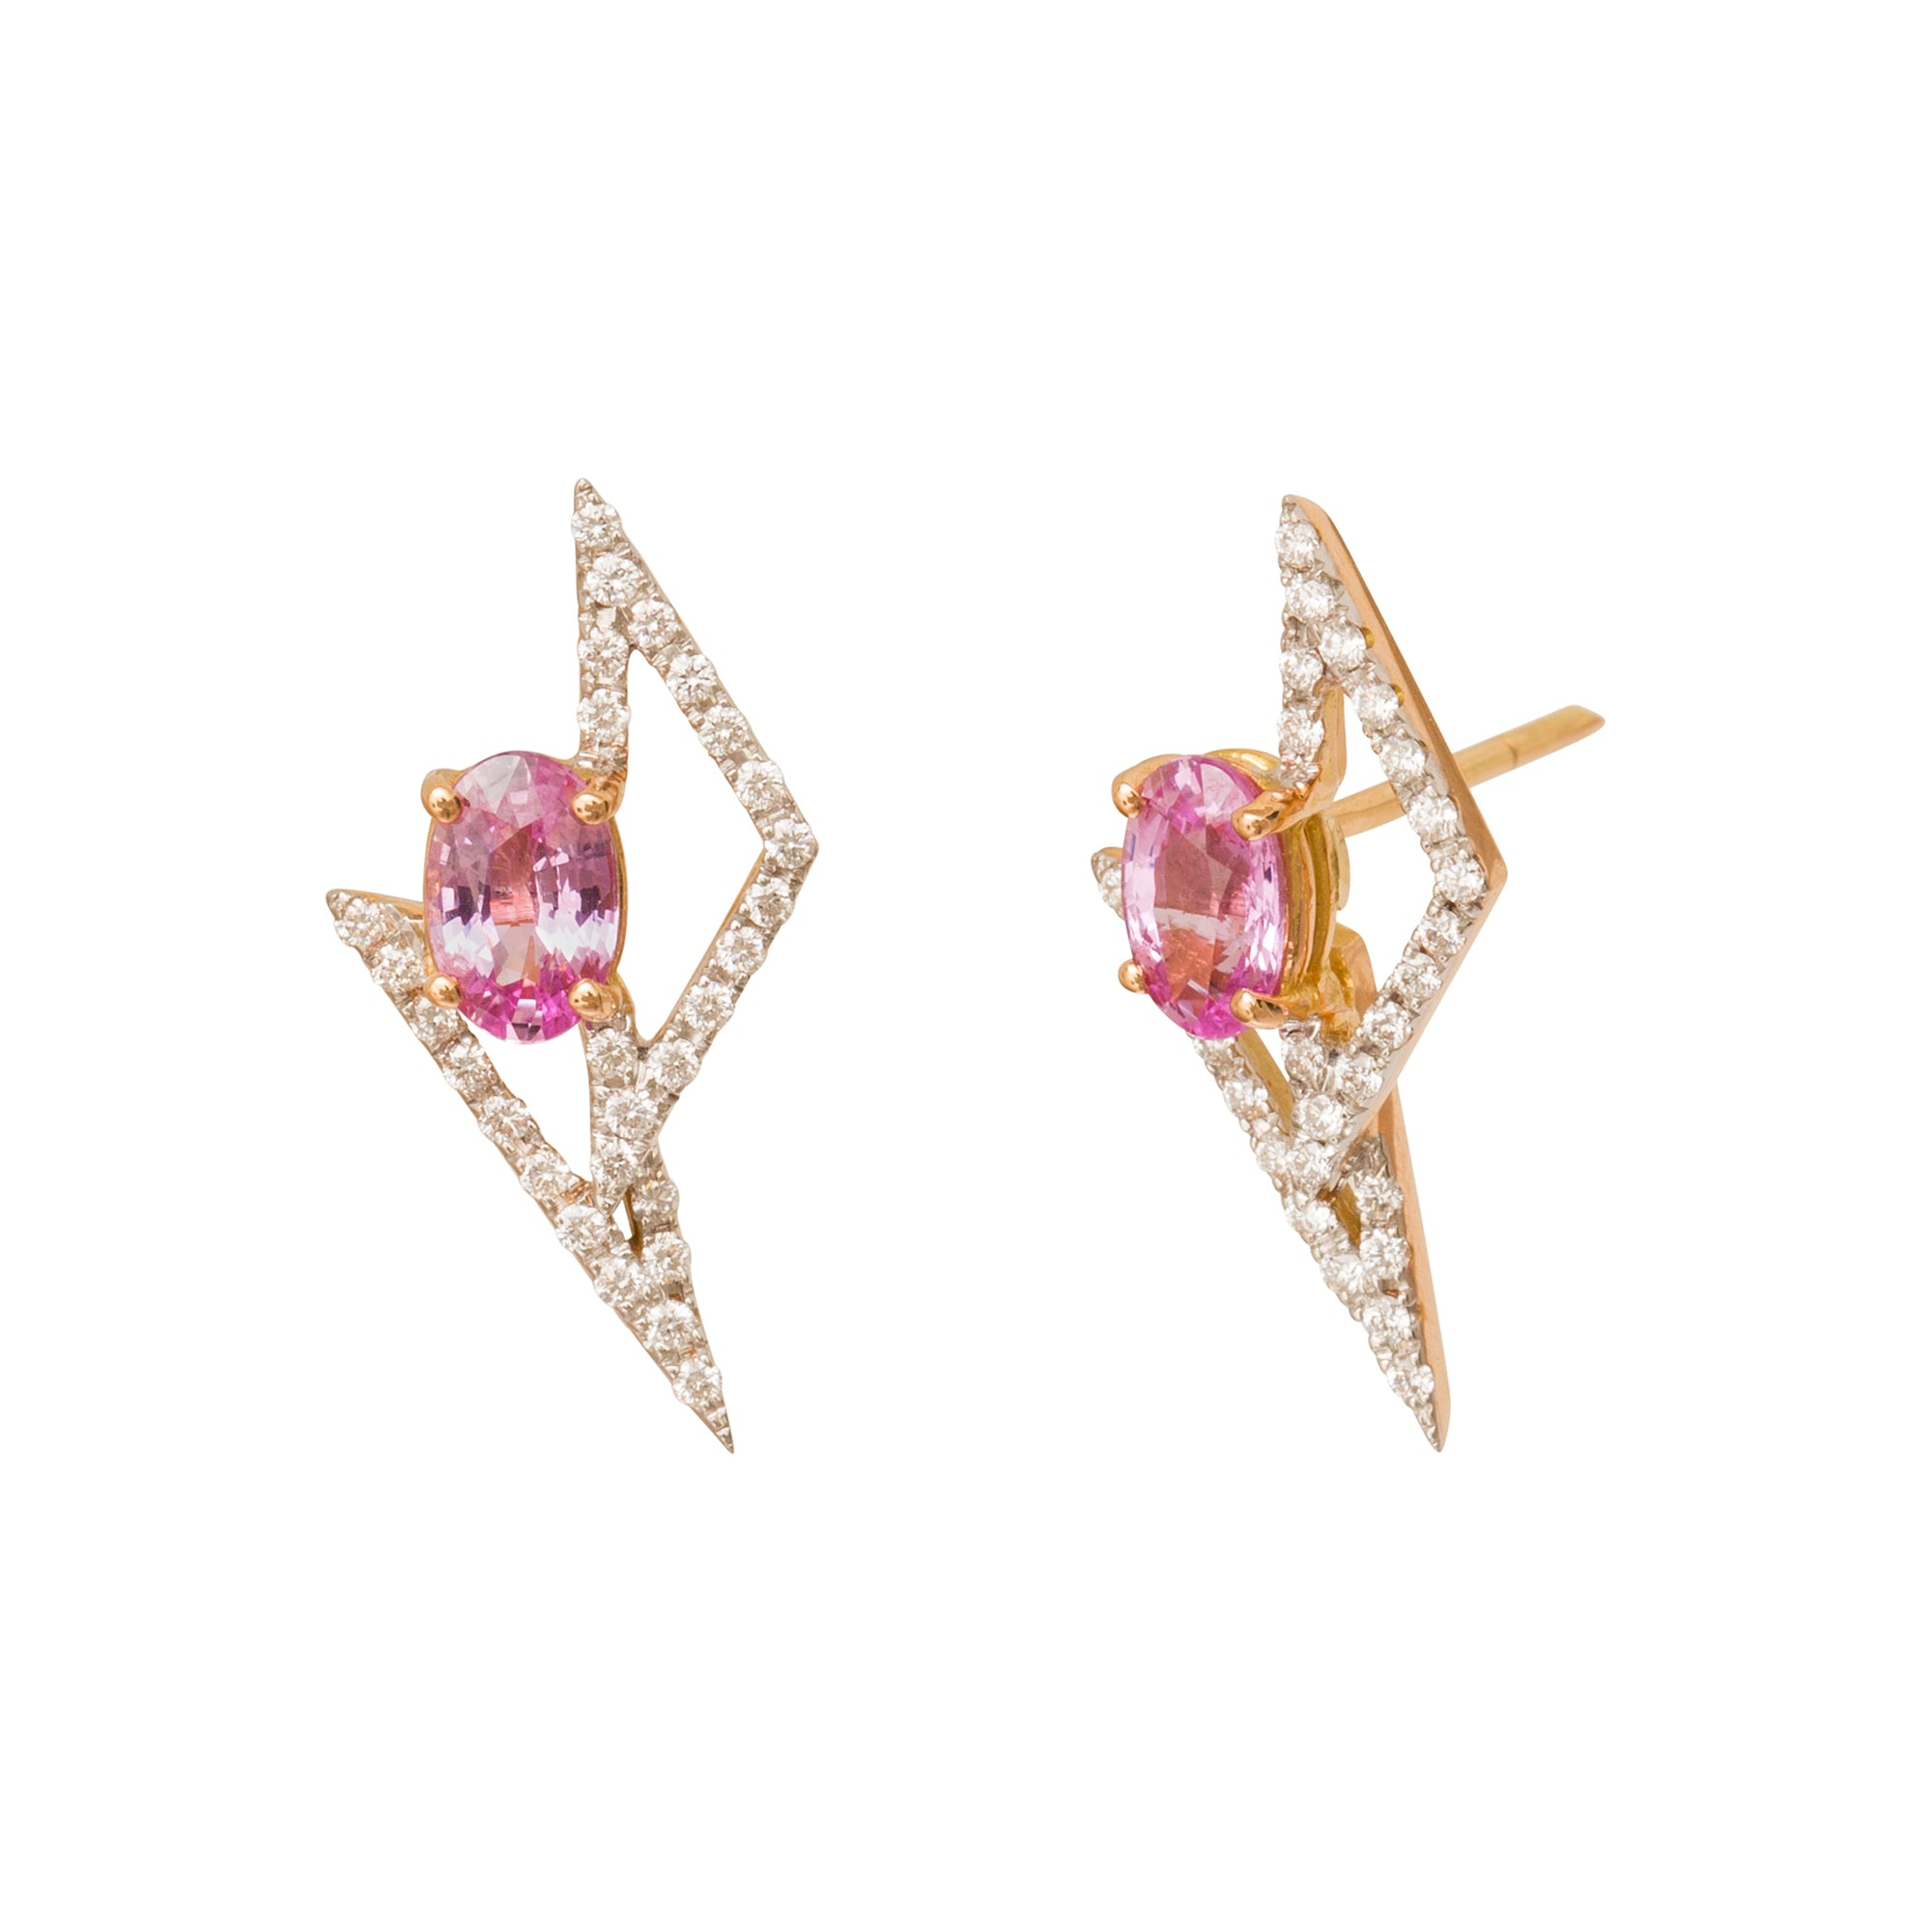 GeoArt Pink Sapphire Stud Earrings by Kavant & Sharart for Broken English Jewelry